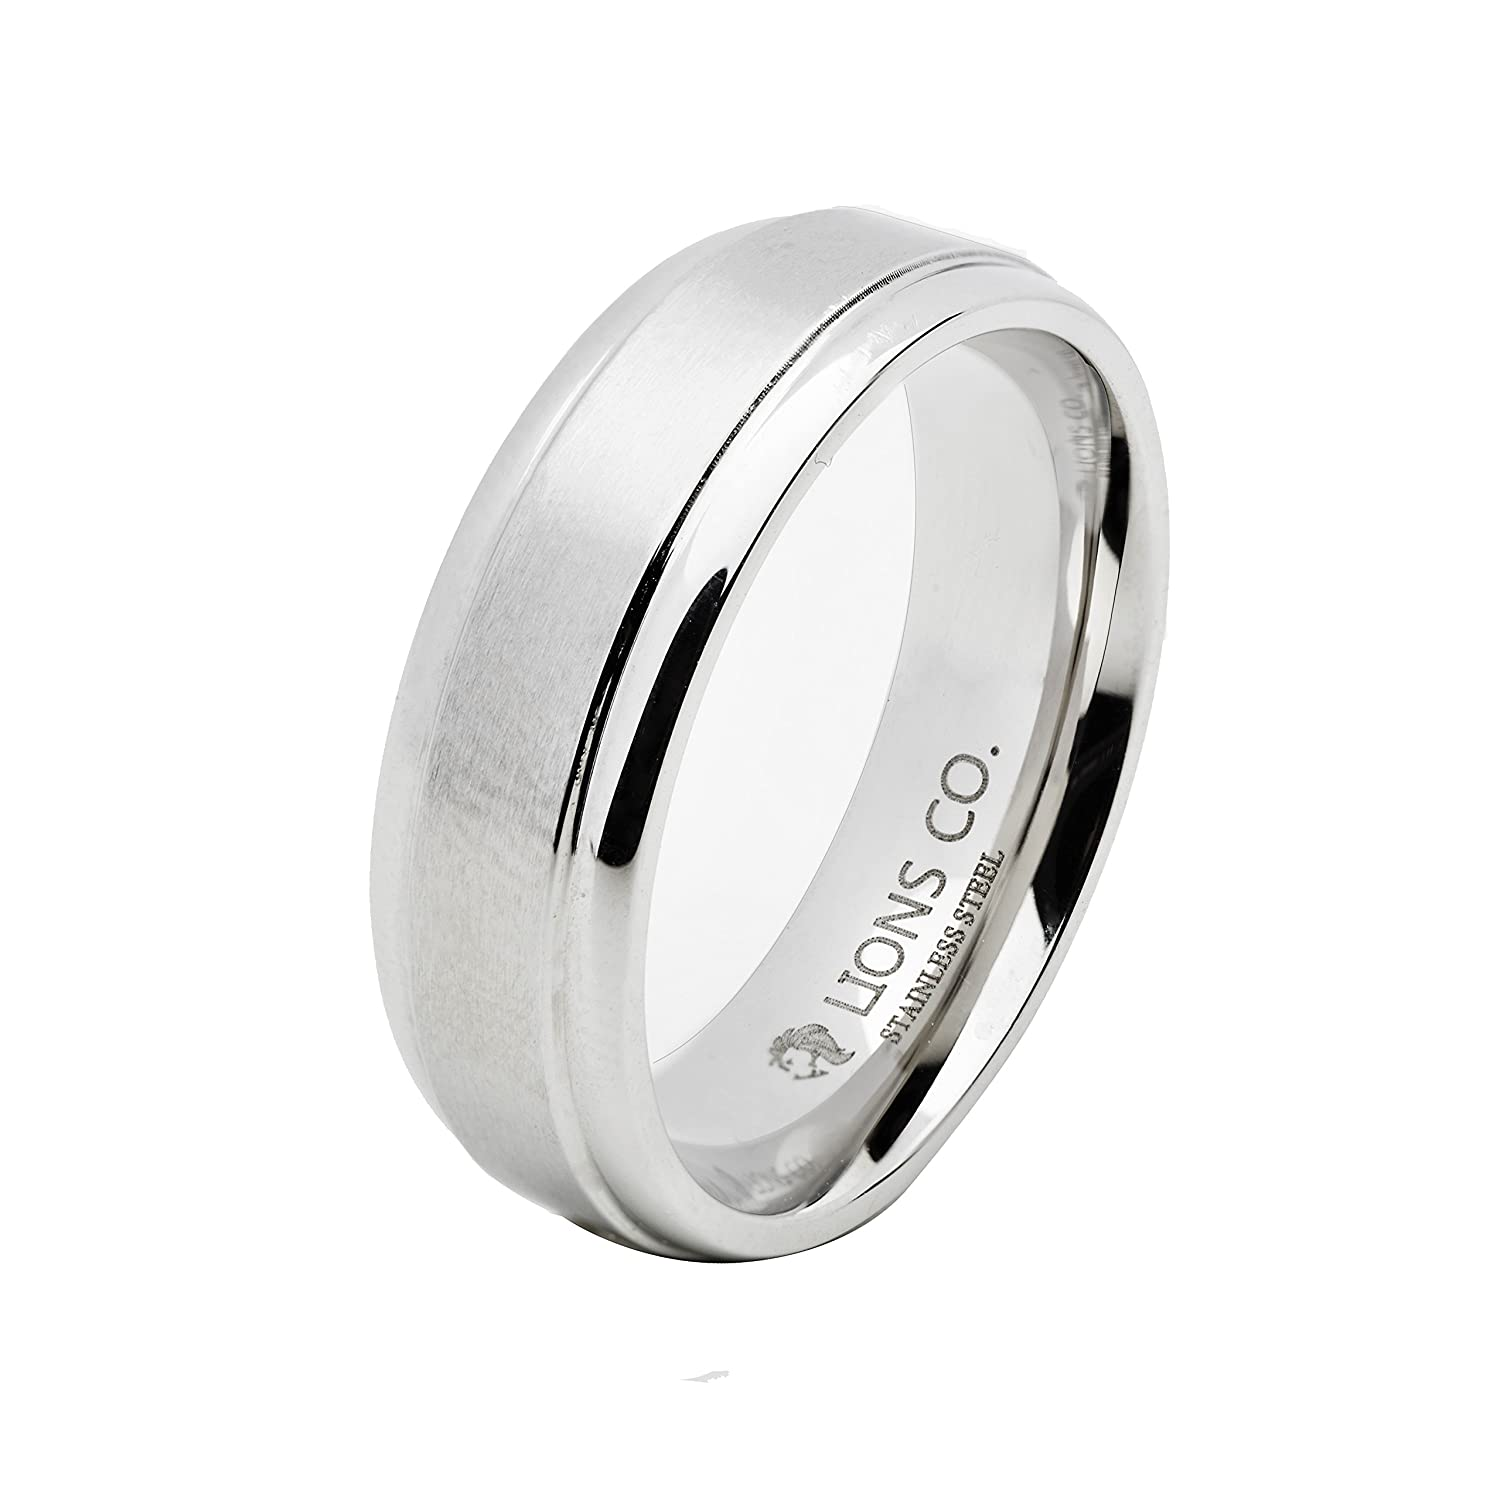 band ring rings products dome semi sparkly finish in sand wholesale steel s wedding stainless main style photo